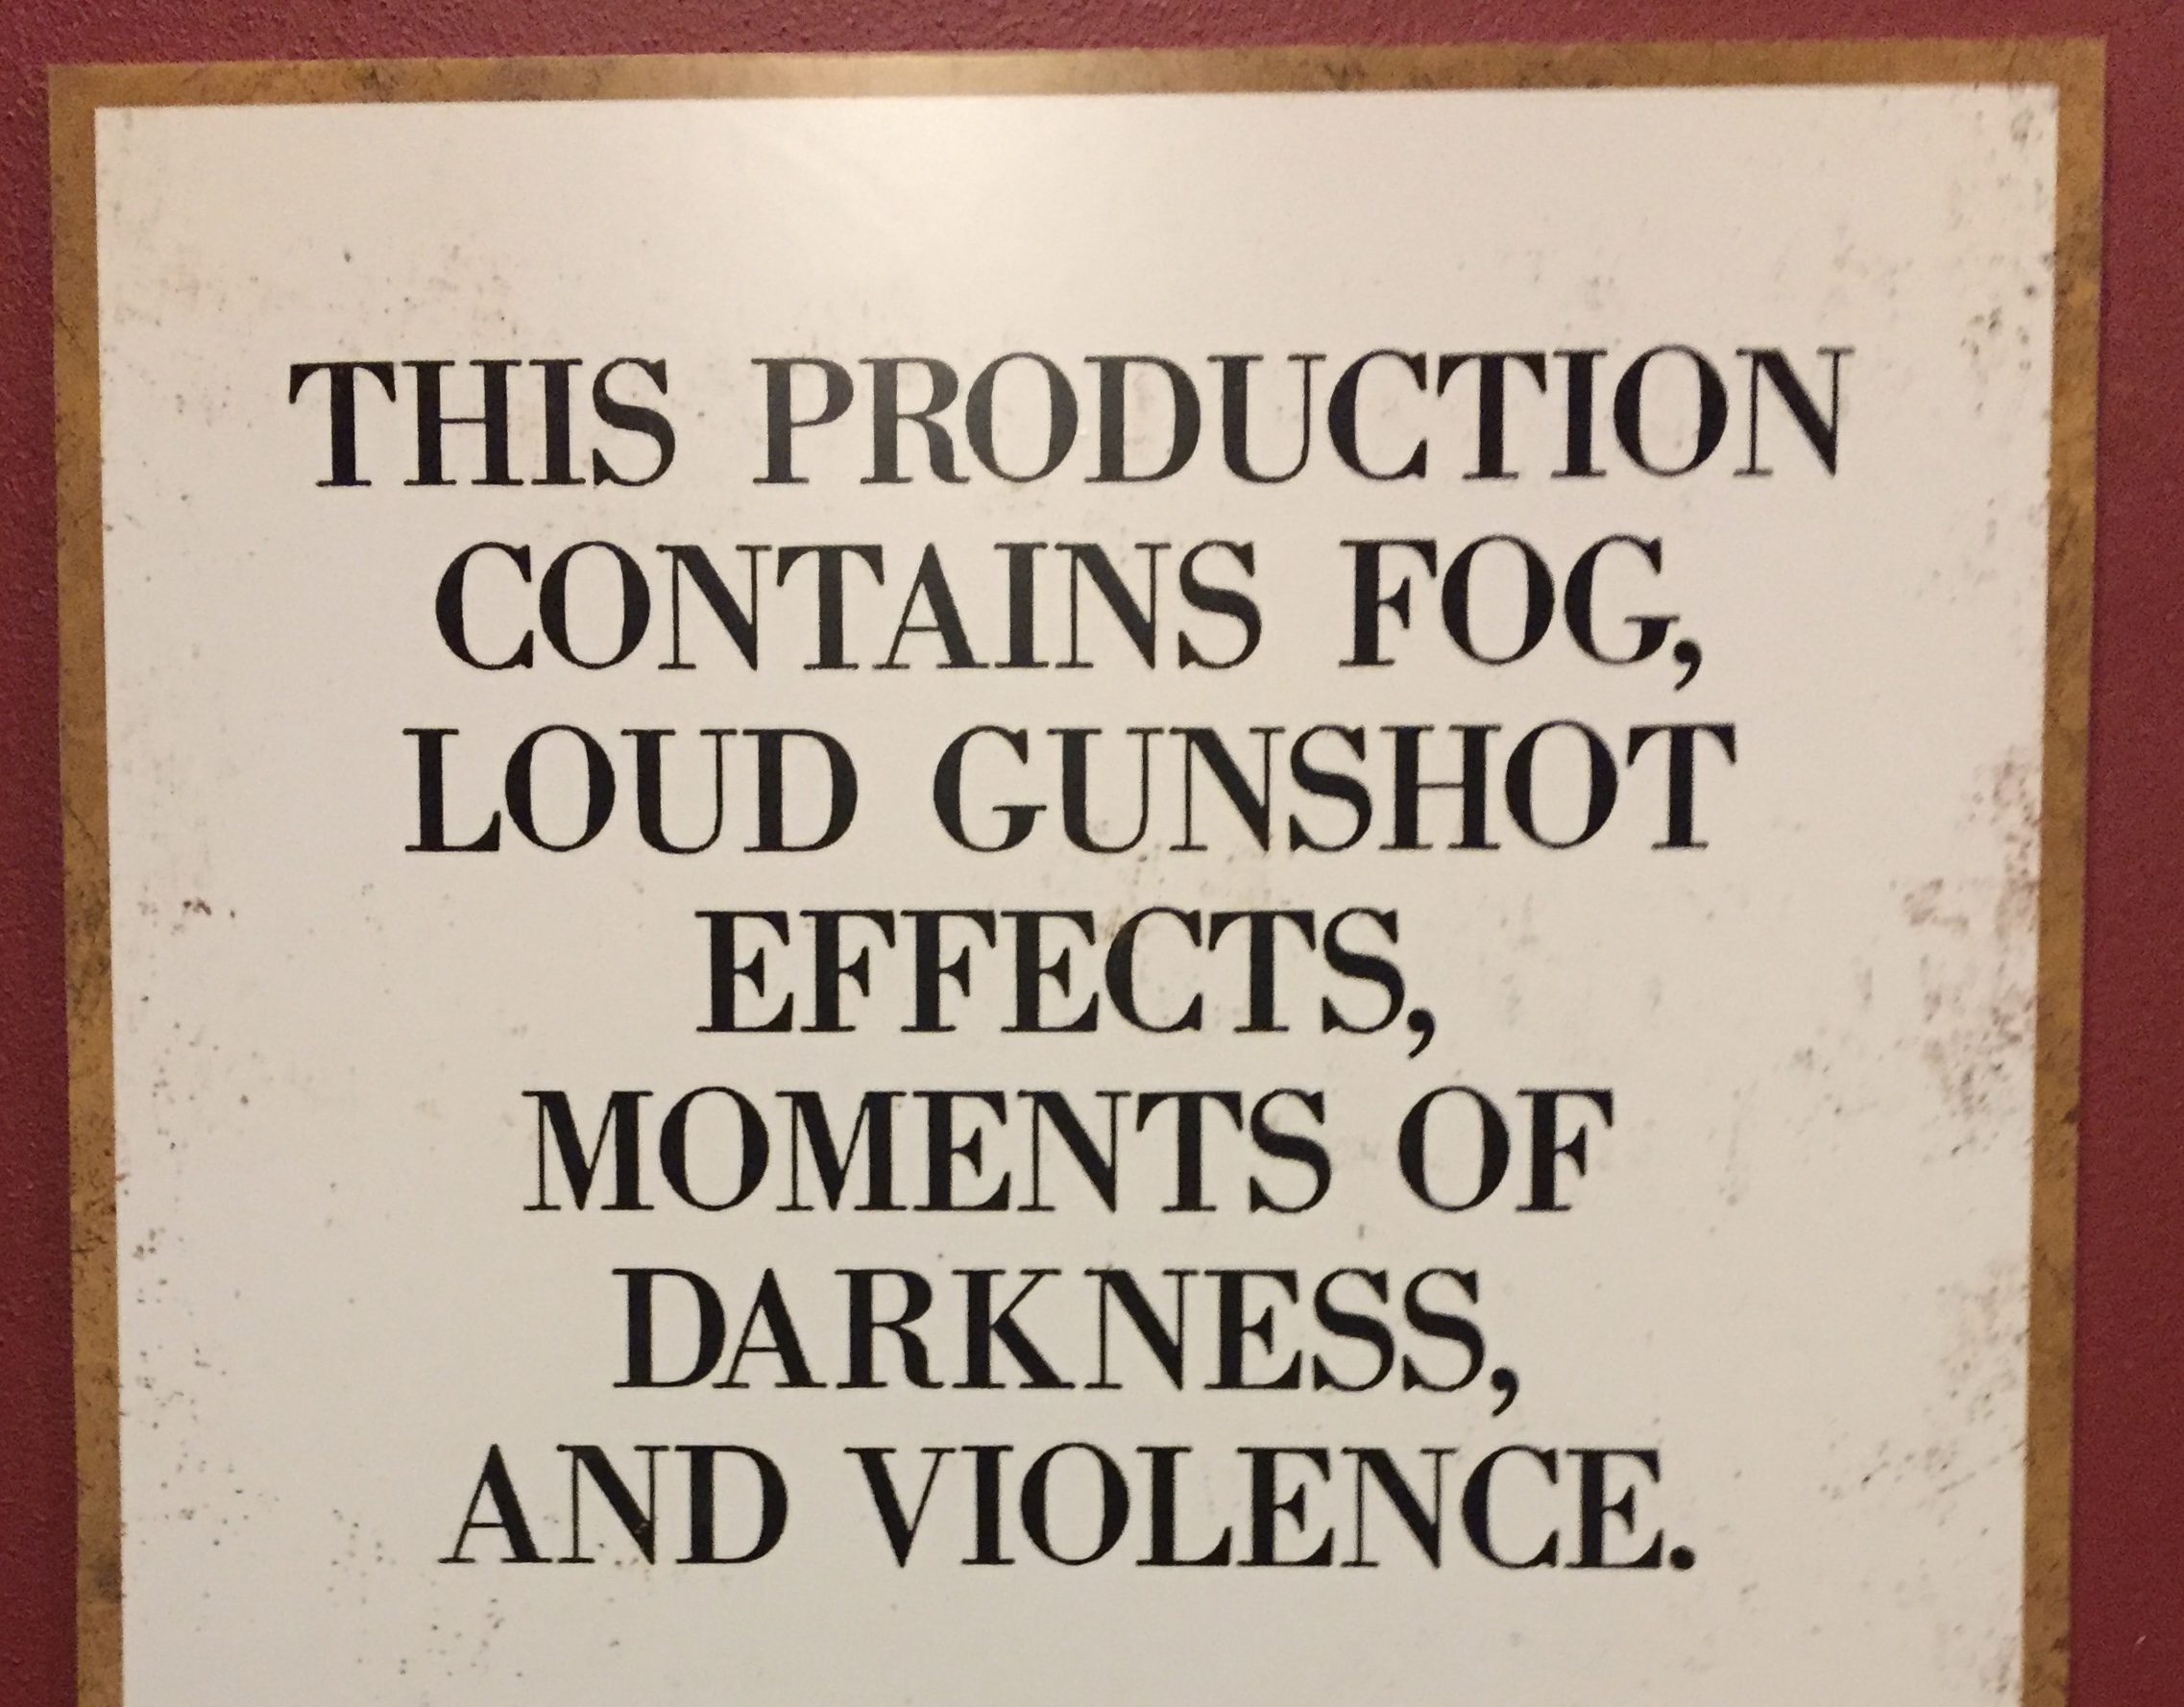 This production contains fog, loud gunshot effects, moments of darkness, and violence.